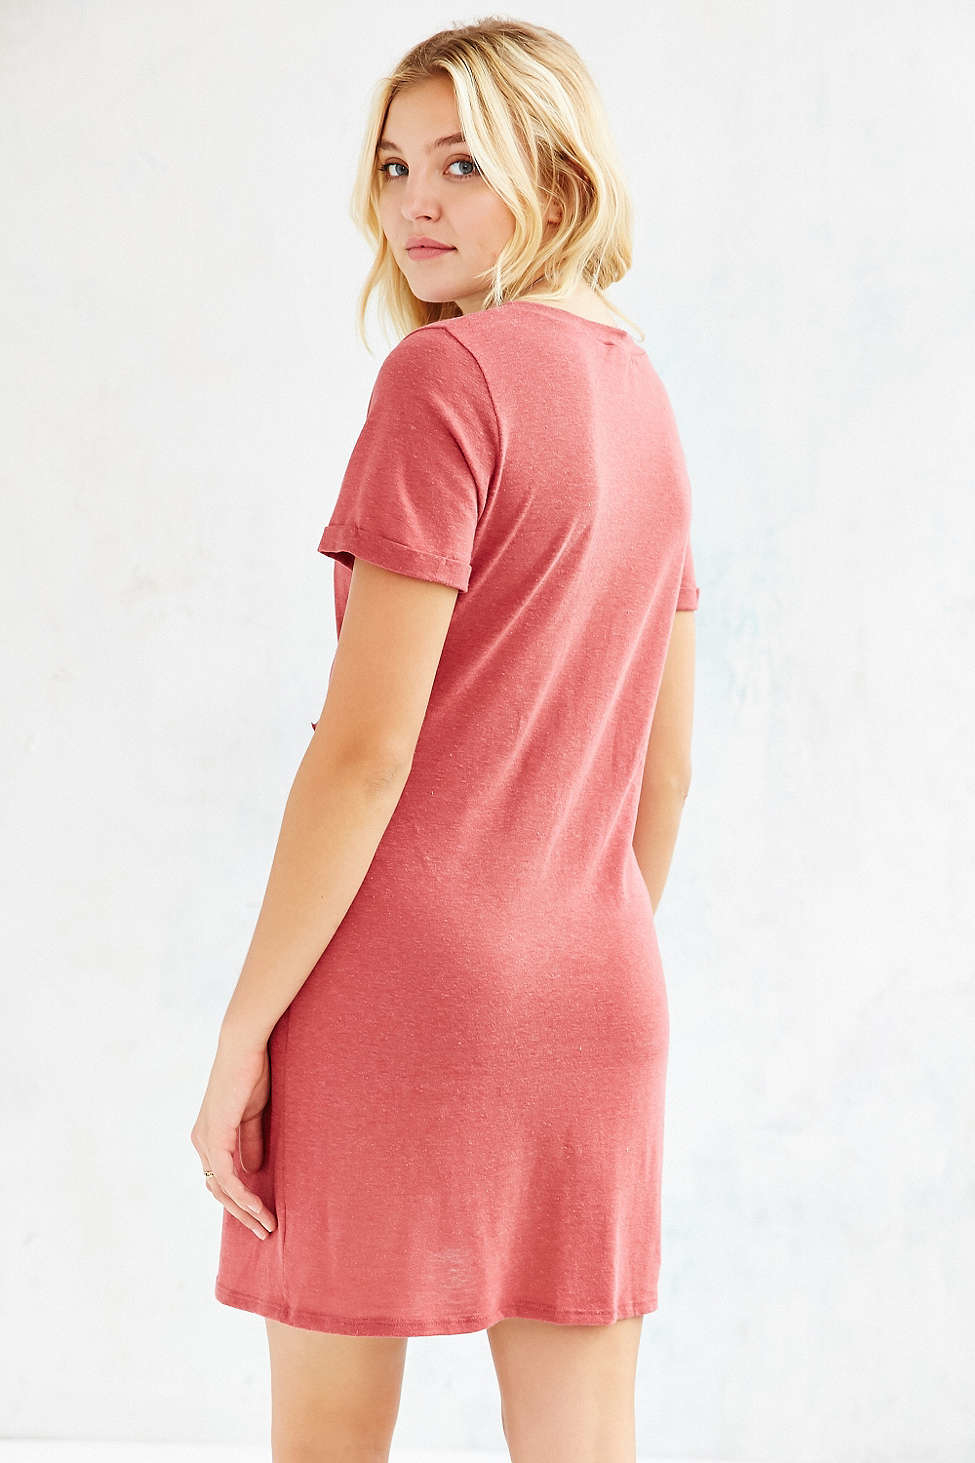 7679a02b9c6 Gallery. Previously sold at: Urban Outfitters · Women's T Shirt Dresses